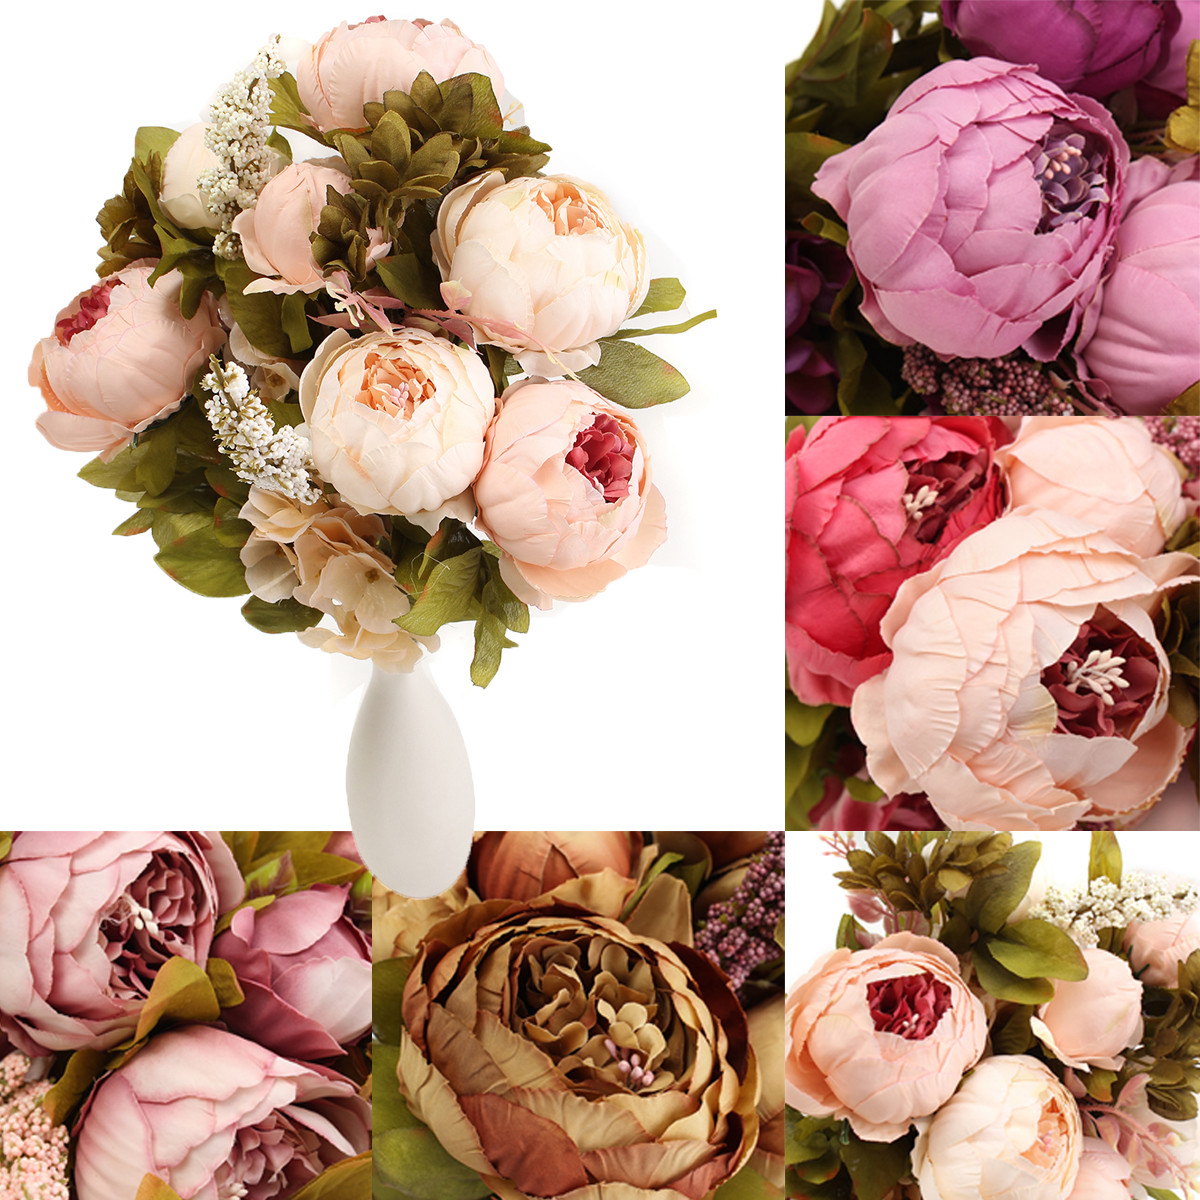 Bride Peony Silk Flowers Artificial Bouquet Bridal Wedding Party Home Decoration